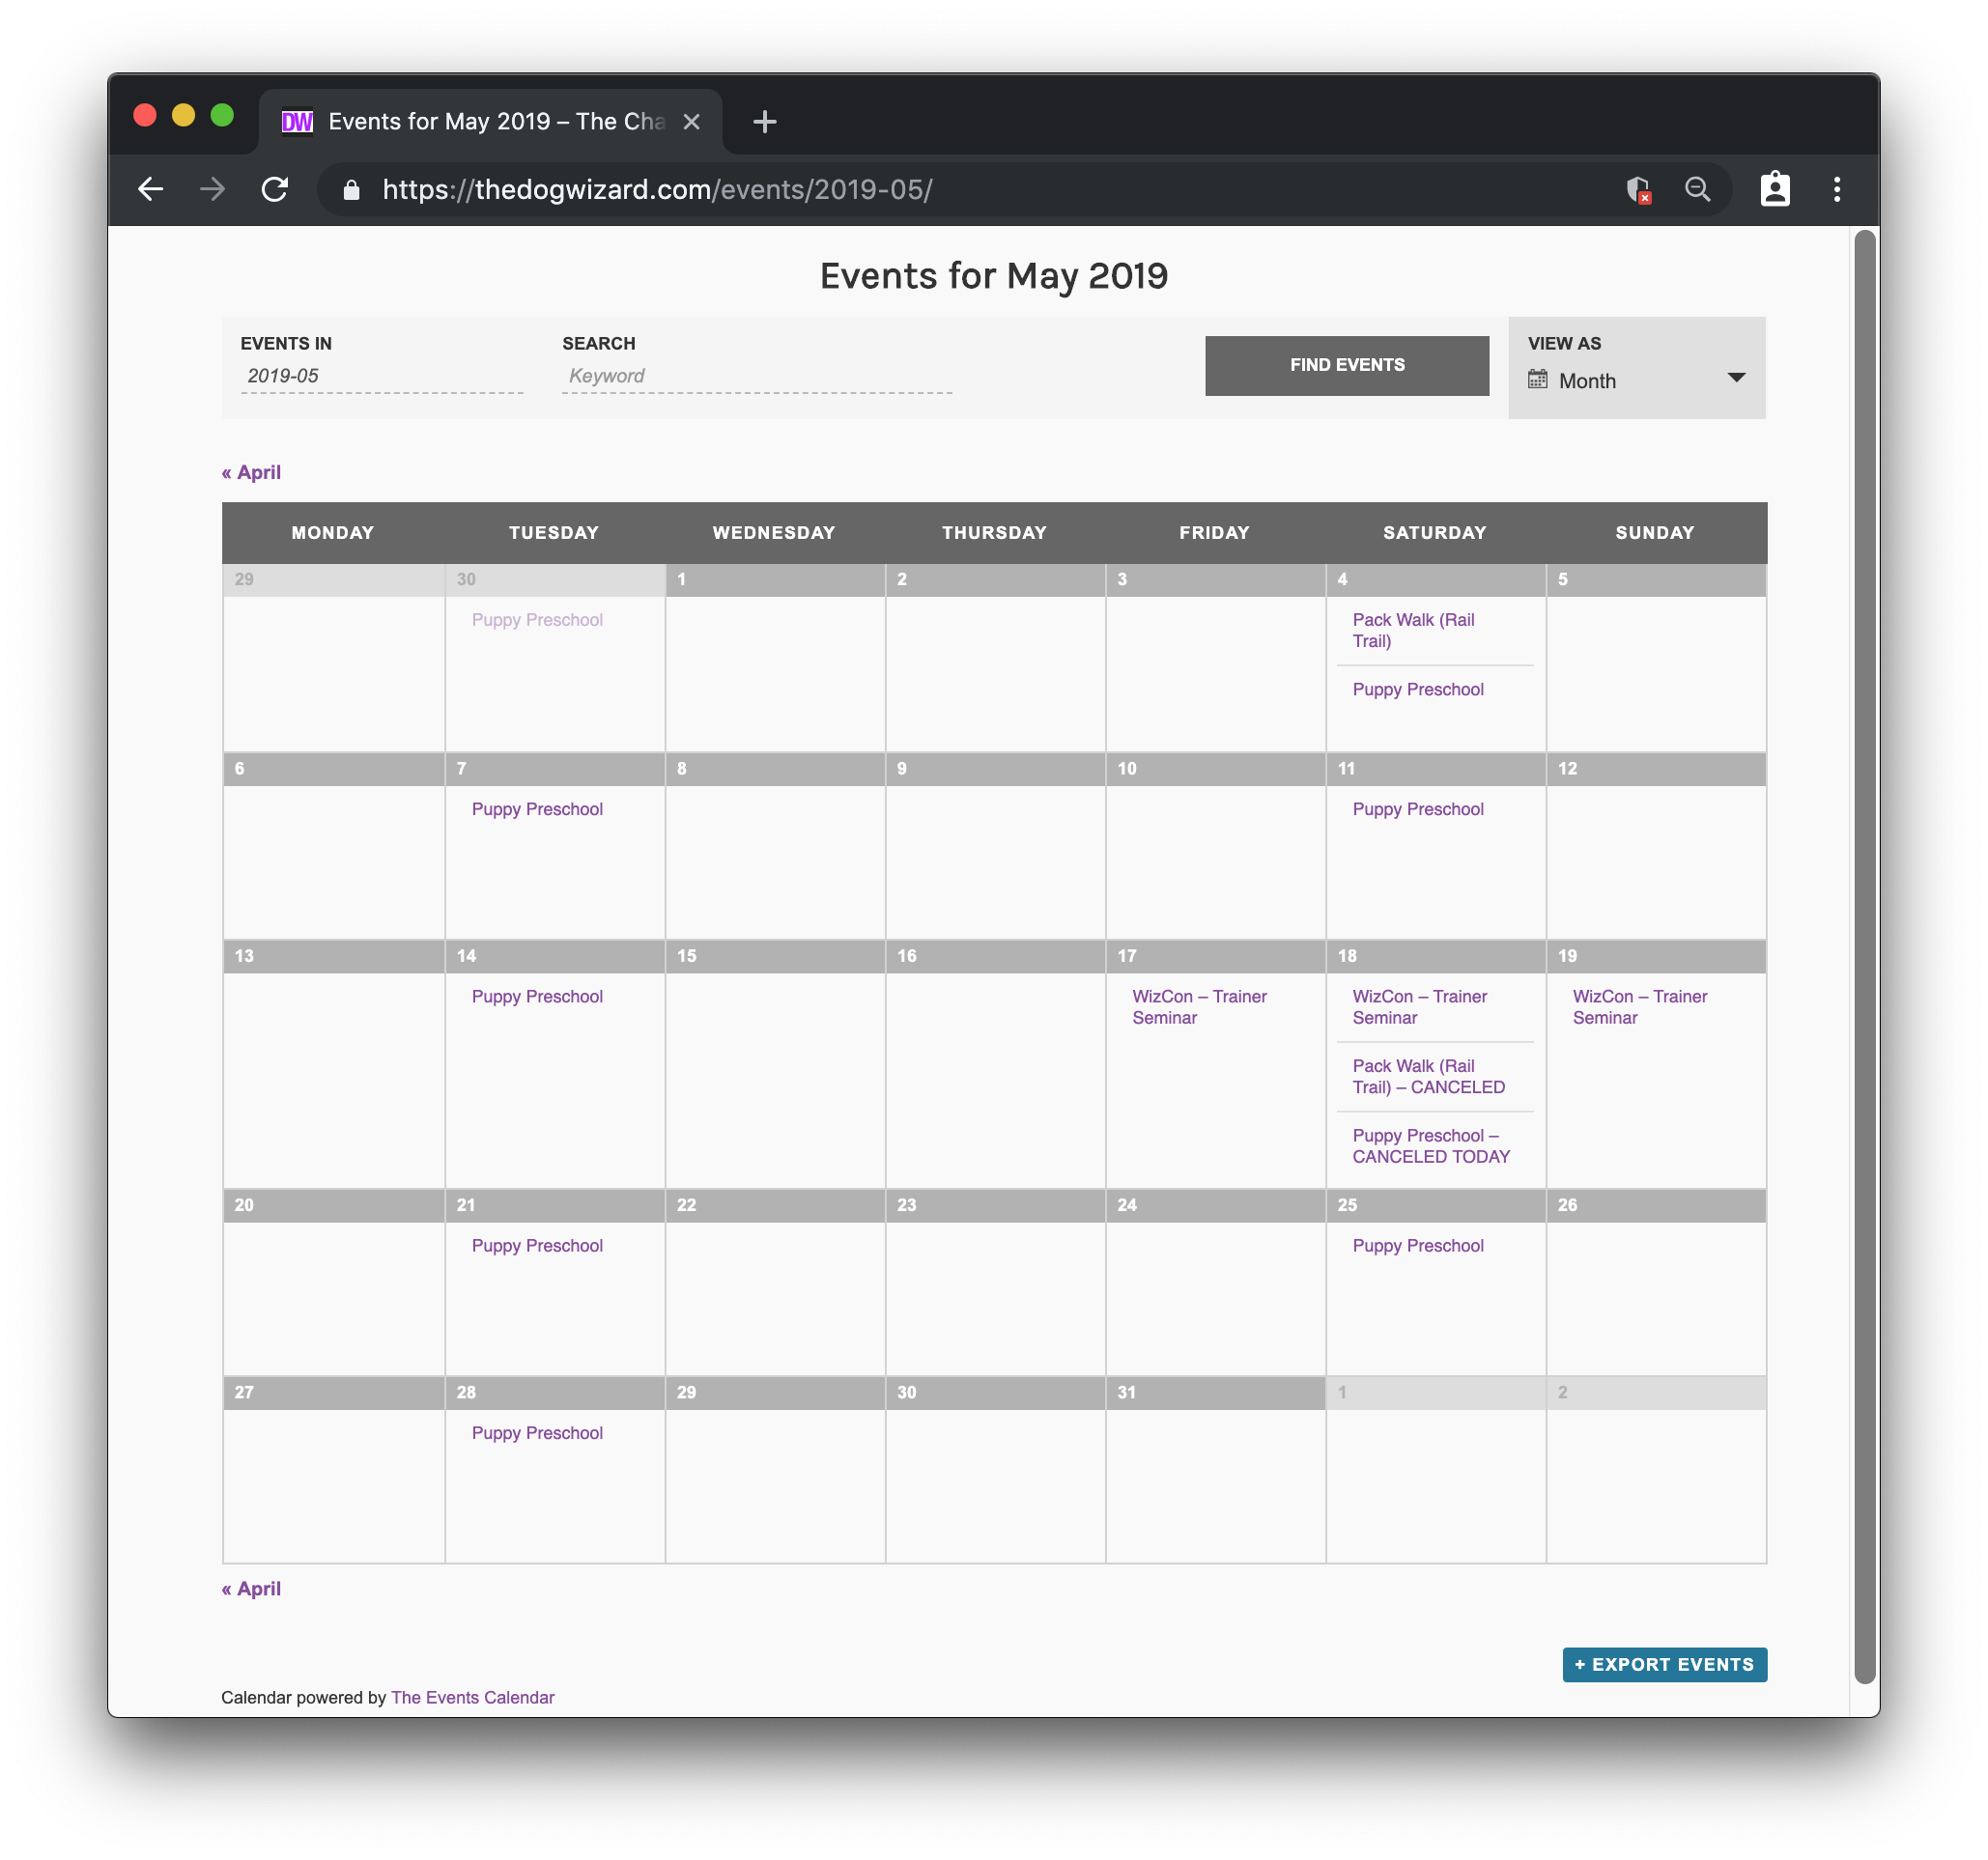 A screenshot of The Dog Wizard website calendar for the month of May 2019.